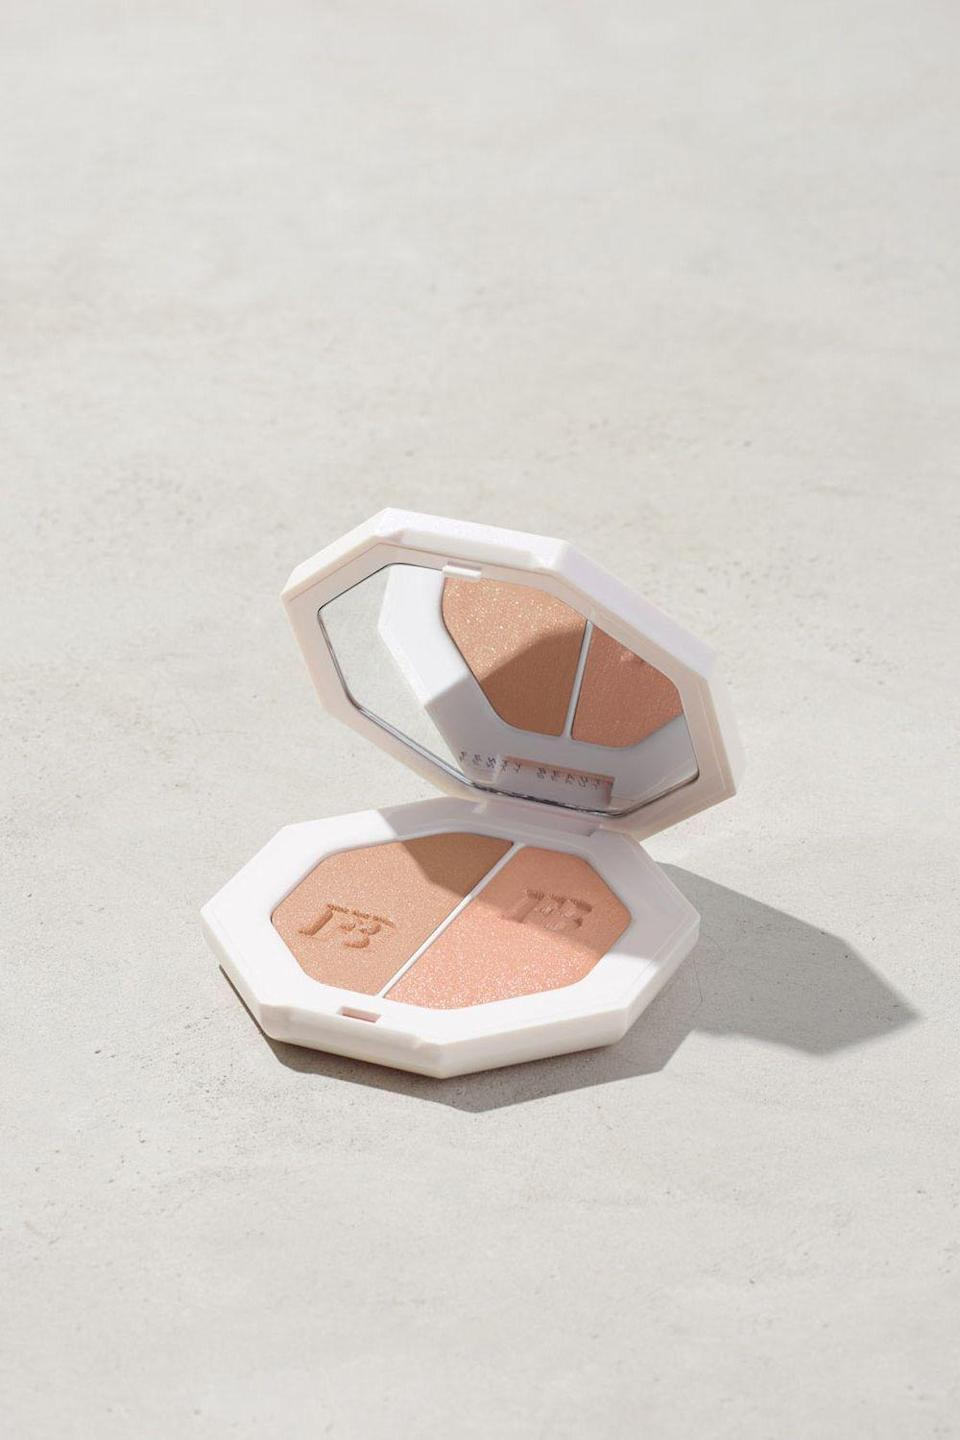 """<p><strong>Fenty Beauty</strong></p><p>fentybeauty.com</p><p><a href=""""https://go.redirectingat.com?id=74968X1596630&url=https%3A%2F%2Fwww.fentybeauty.com%2Fkillawatt-freestyle-highlighter%2FFB30002.html%3Fdwvar_FB30002_color%3DFB3004%26cgid%3Dmakeup-blush&sref=https%3A%2F%2Fwww.seventeen.com%2Fbeauty%2Fg34398305%2Ffenty-beauty-sale-october-2020%2F"""" rel=""""nofollow noopener"""" target=""""_blank"""" data-ylk=""""slk:SHOP IT"""" class=""""link rapid-noclick-resp"""">SHOP IT </a></p><p><strong><del>$36 </del>$24.30 (33% off)</strong></p><p>This lightweight highlighter will give your face that extra glow you've been craving. Plus, its cream-based formula is designed to last all day long.</p>"""